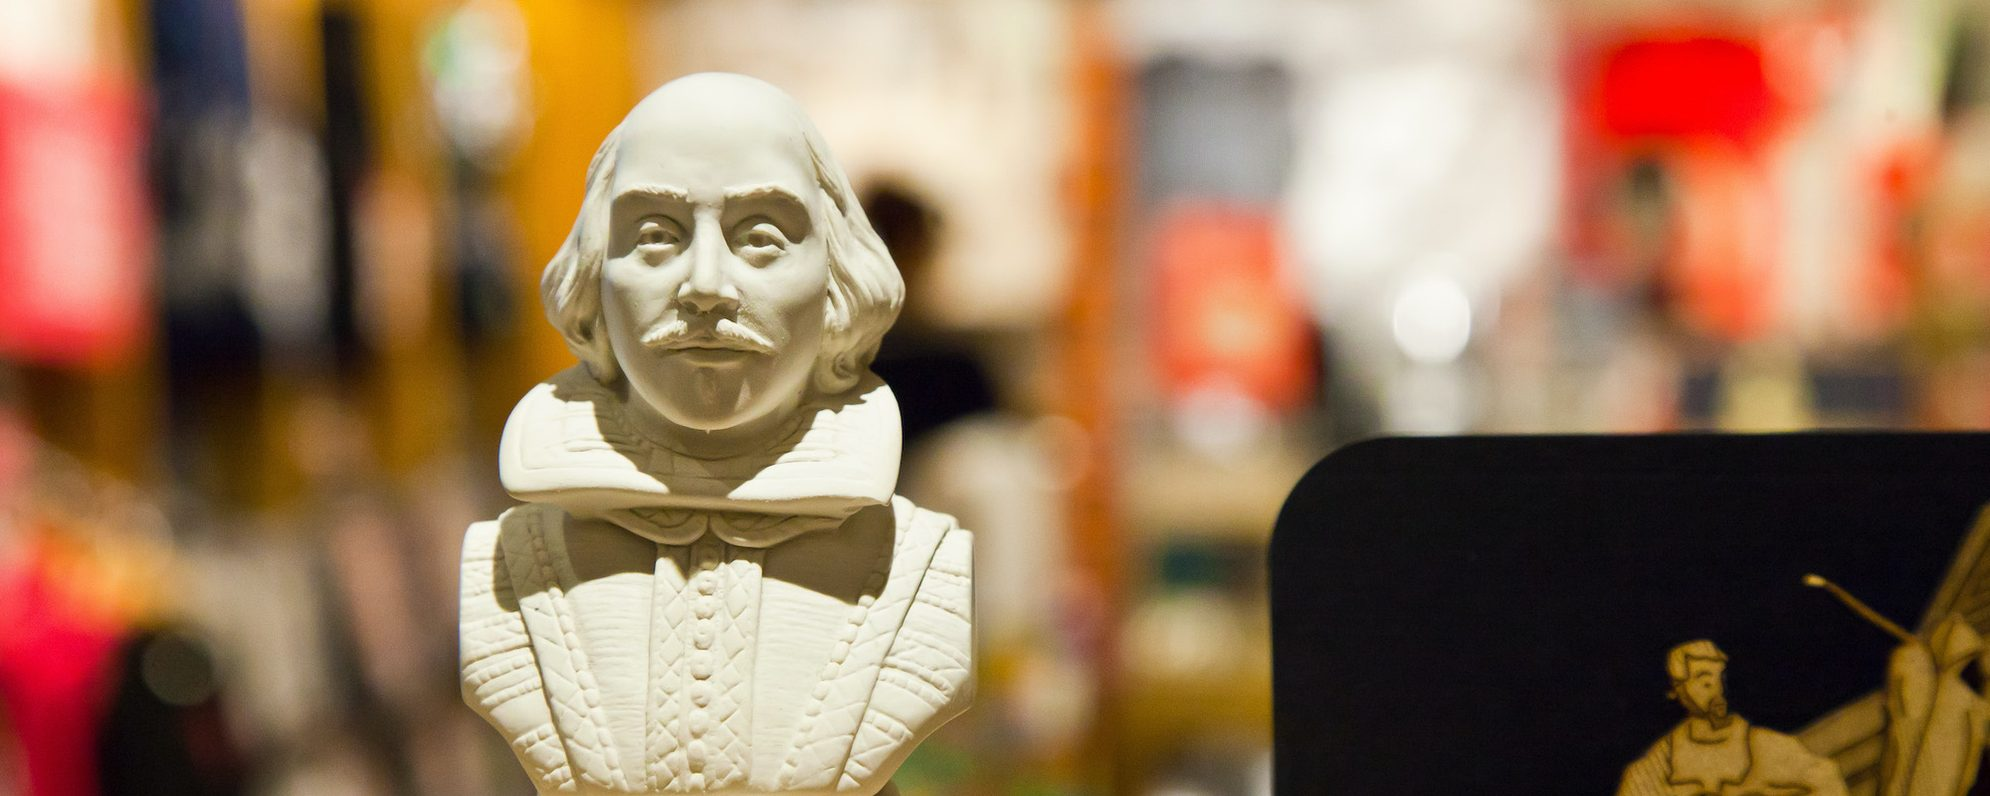 A model bust of Shakespeare's head